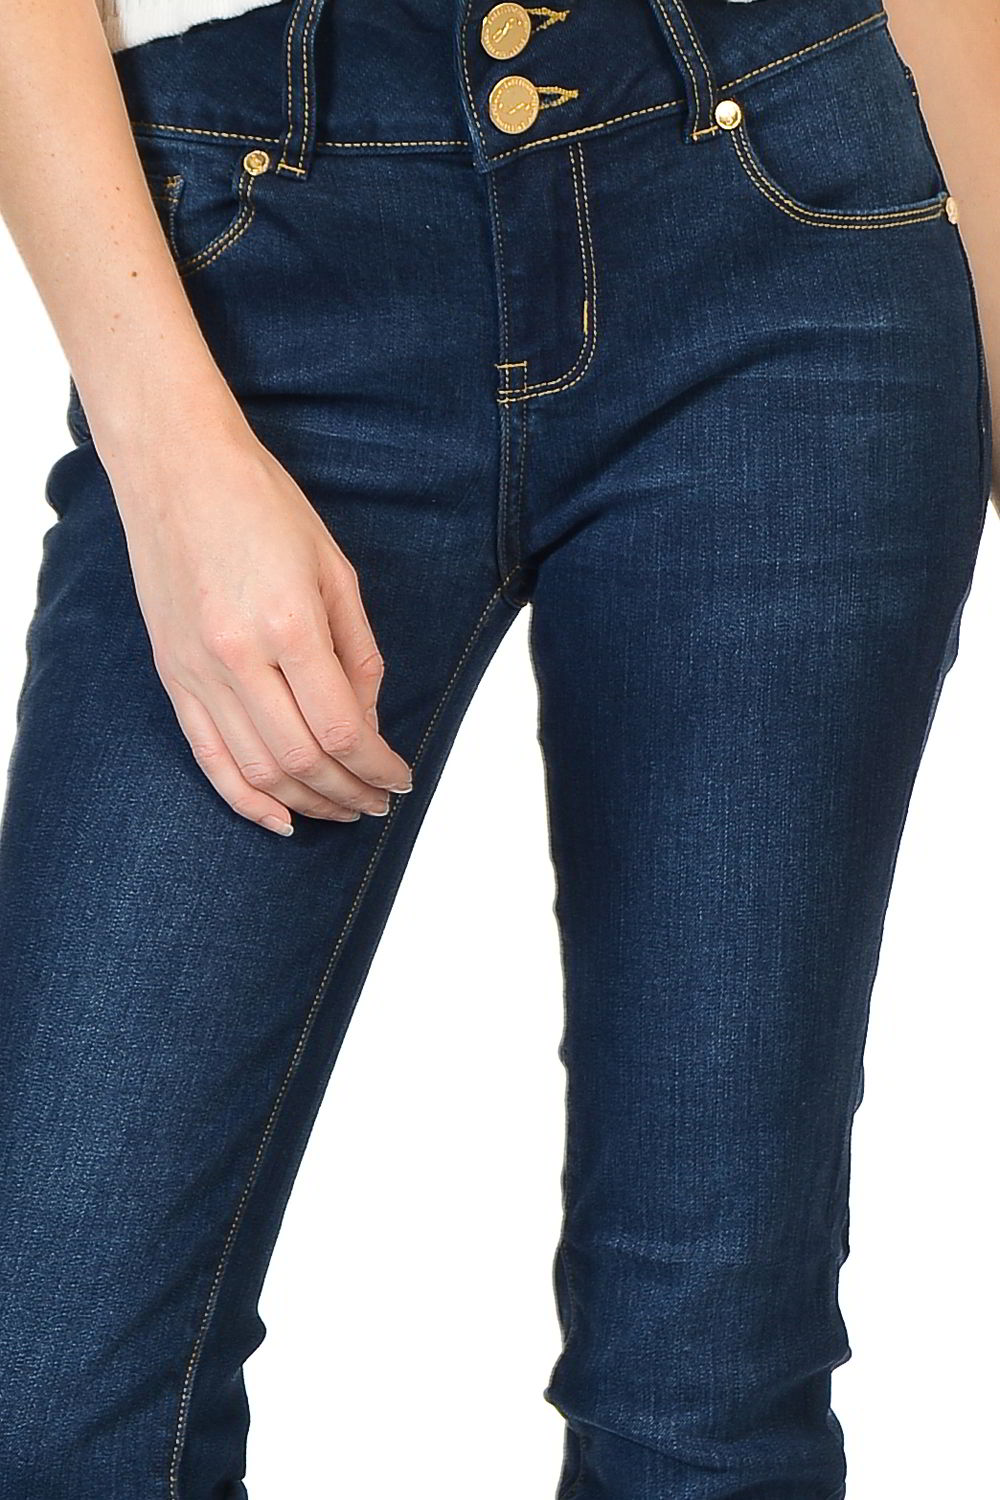 Sweet Look Premium Women's Jeans - N669DH